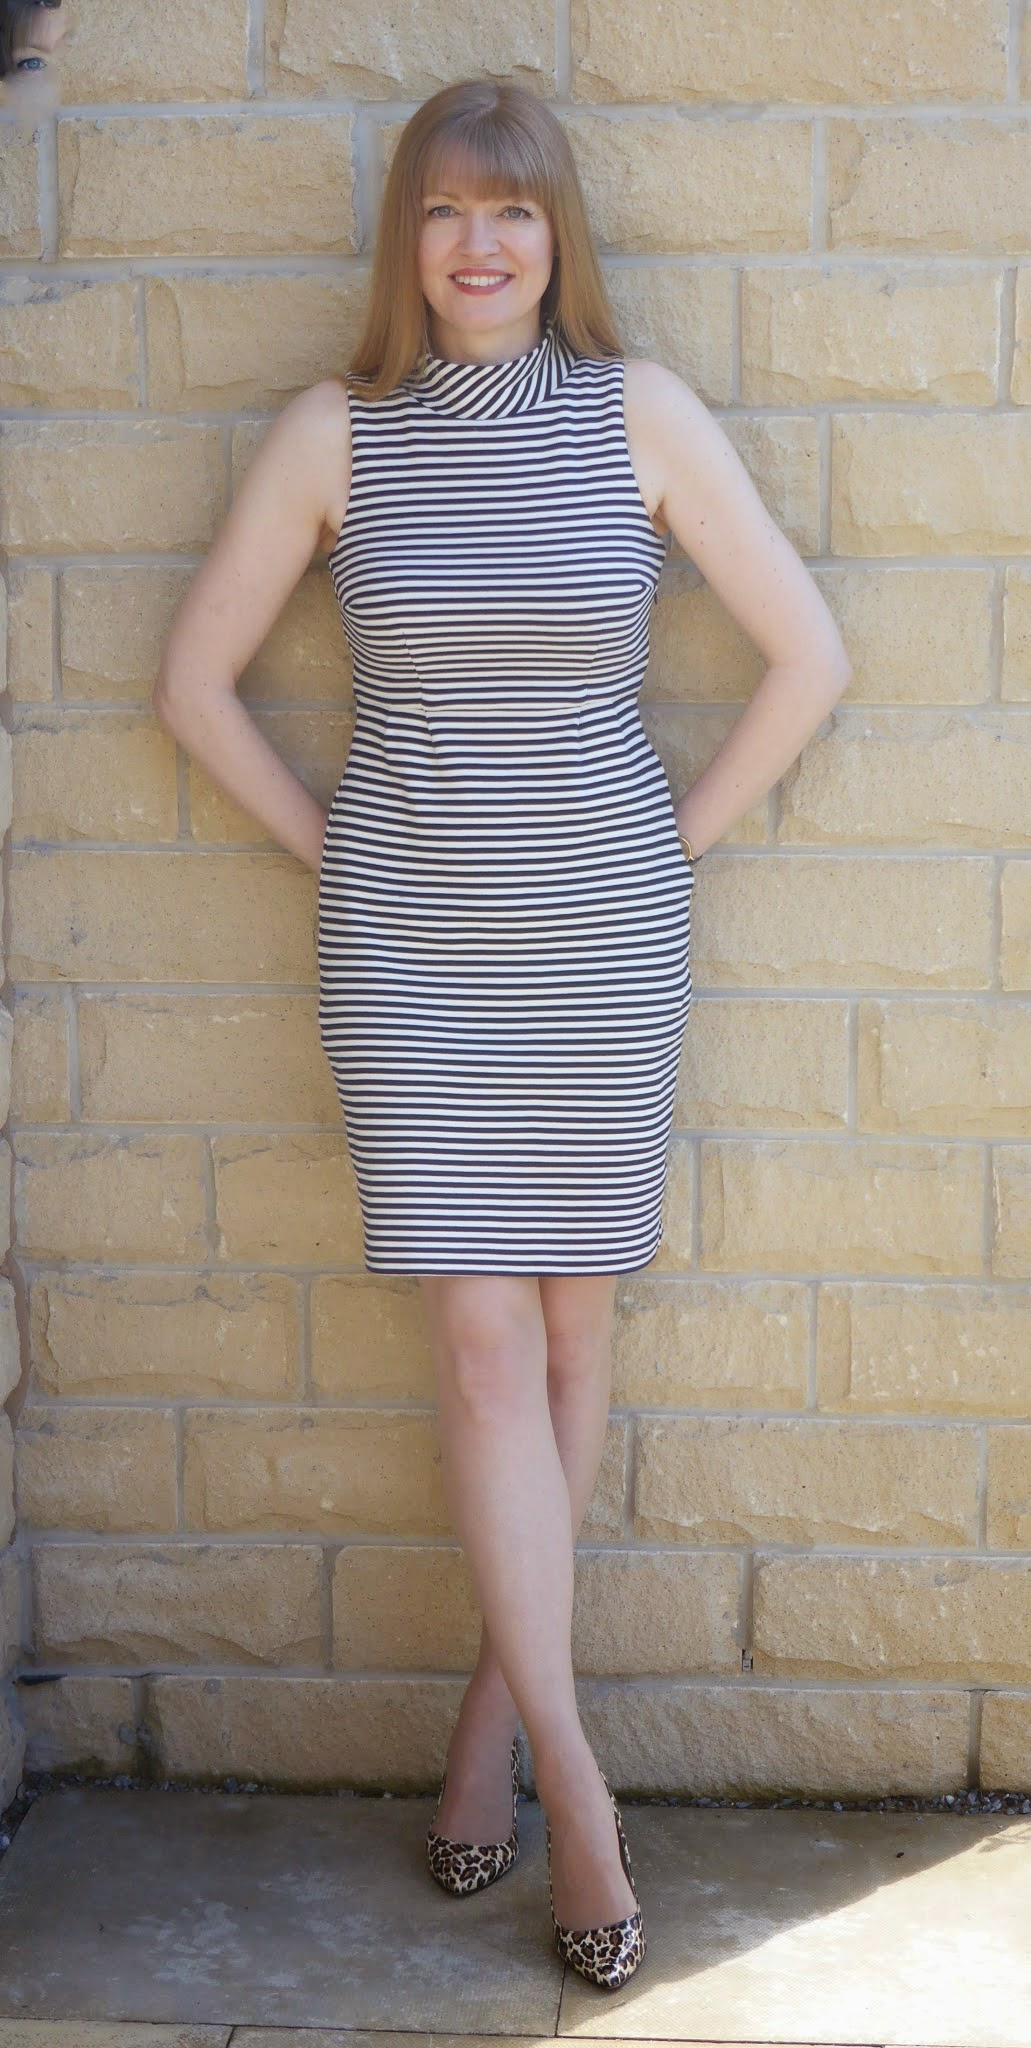 What Lizzy Loves, over 40 fashion blogger wears fitted navy and white striped Boden sixties style dress with leopard heels. Leopard shoes